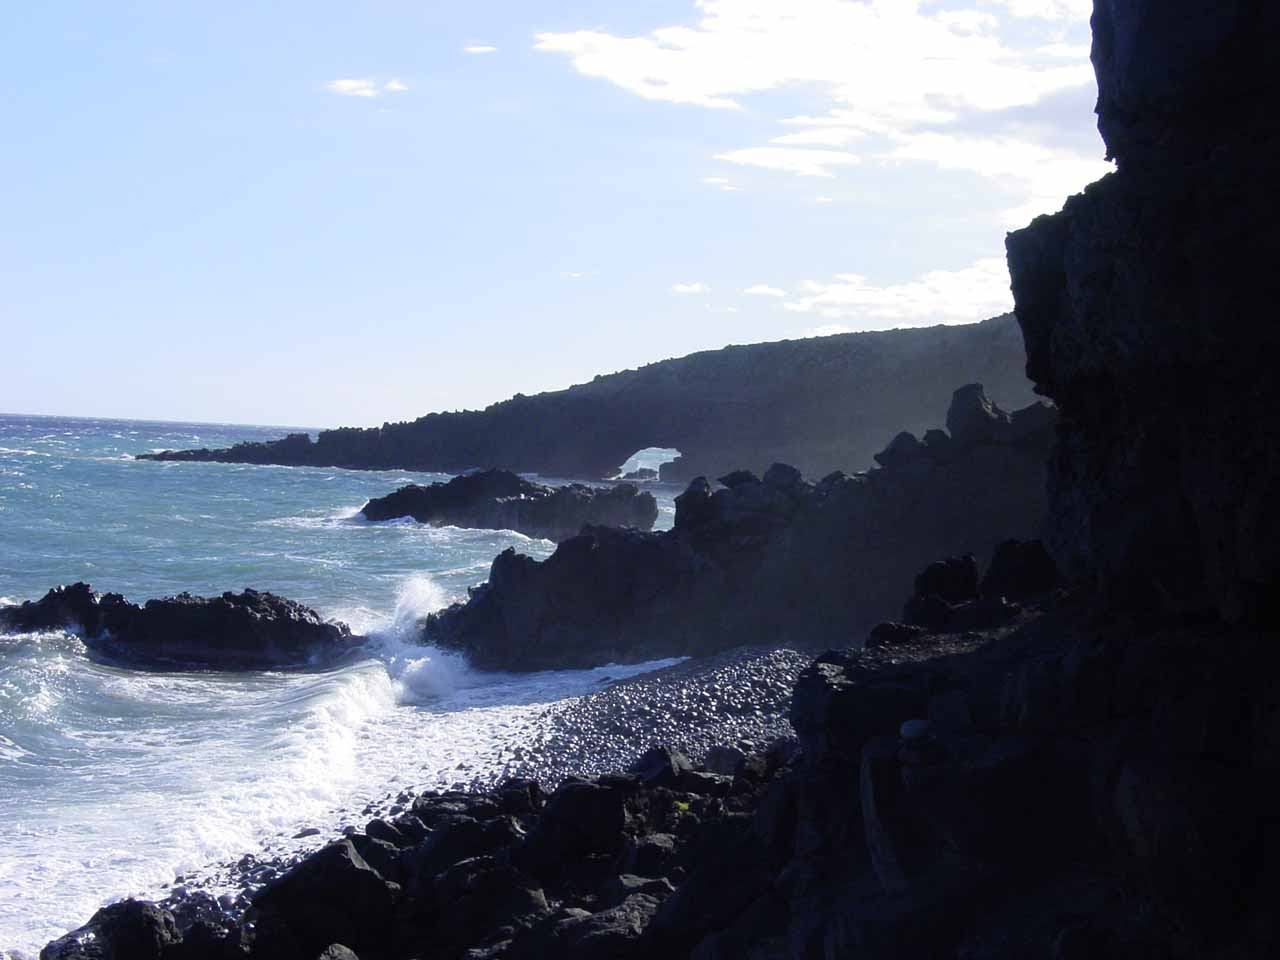 If you can make it all the way around East Maui, we definitely recommend doing so, especially for sights like the Pokowai Sea Arch